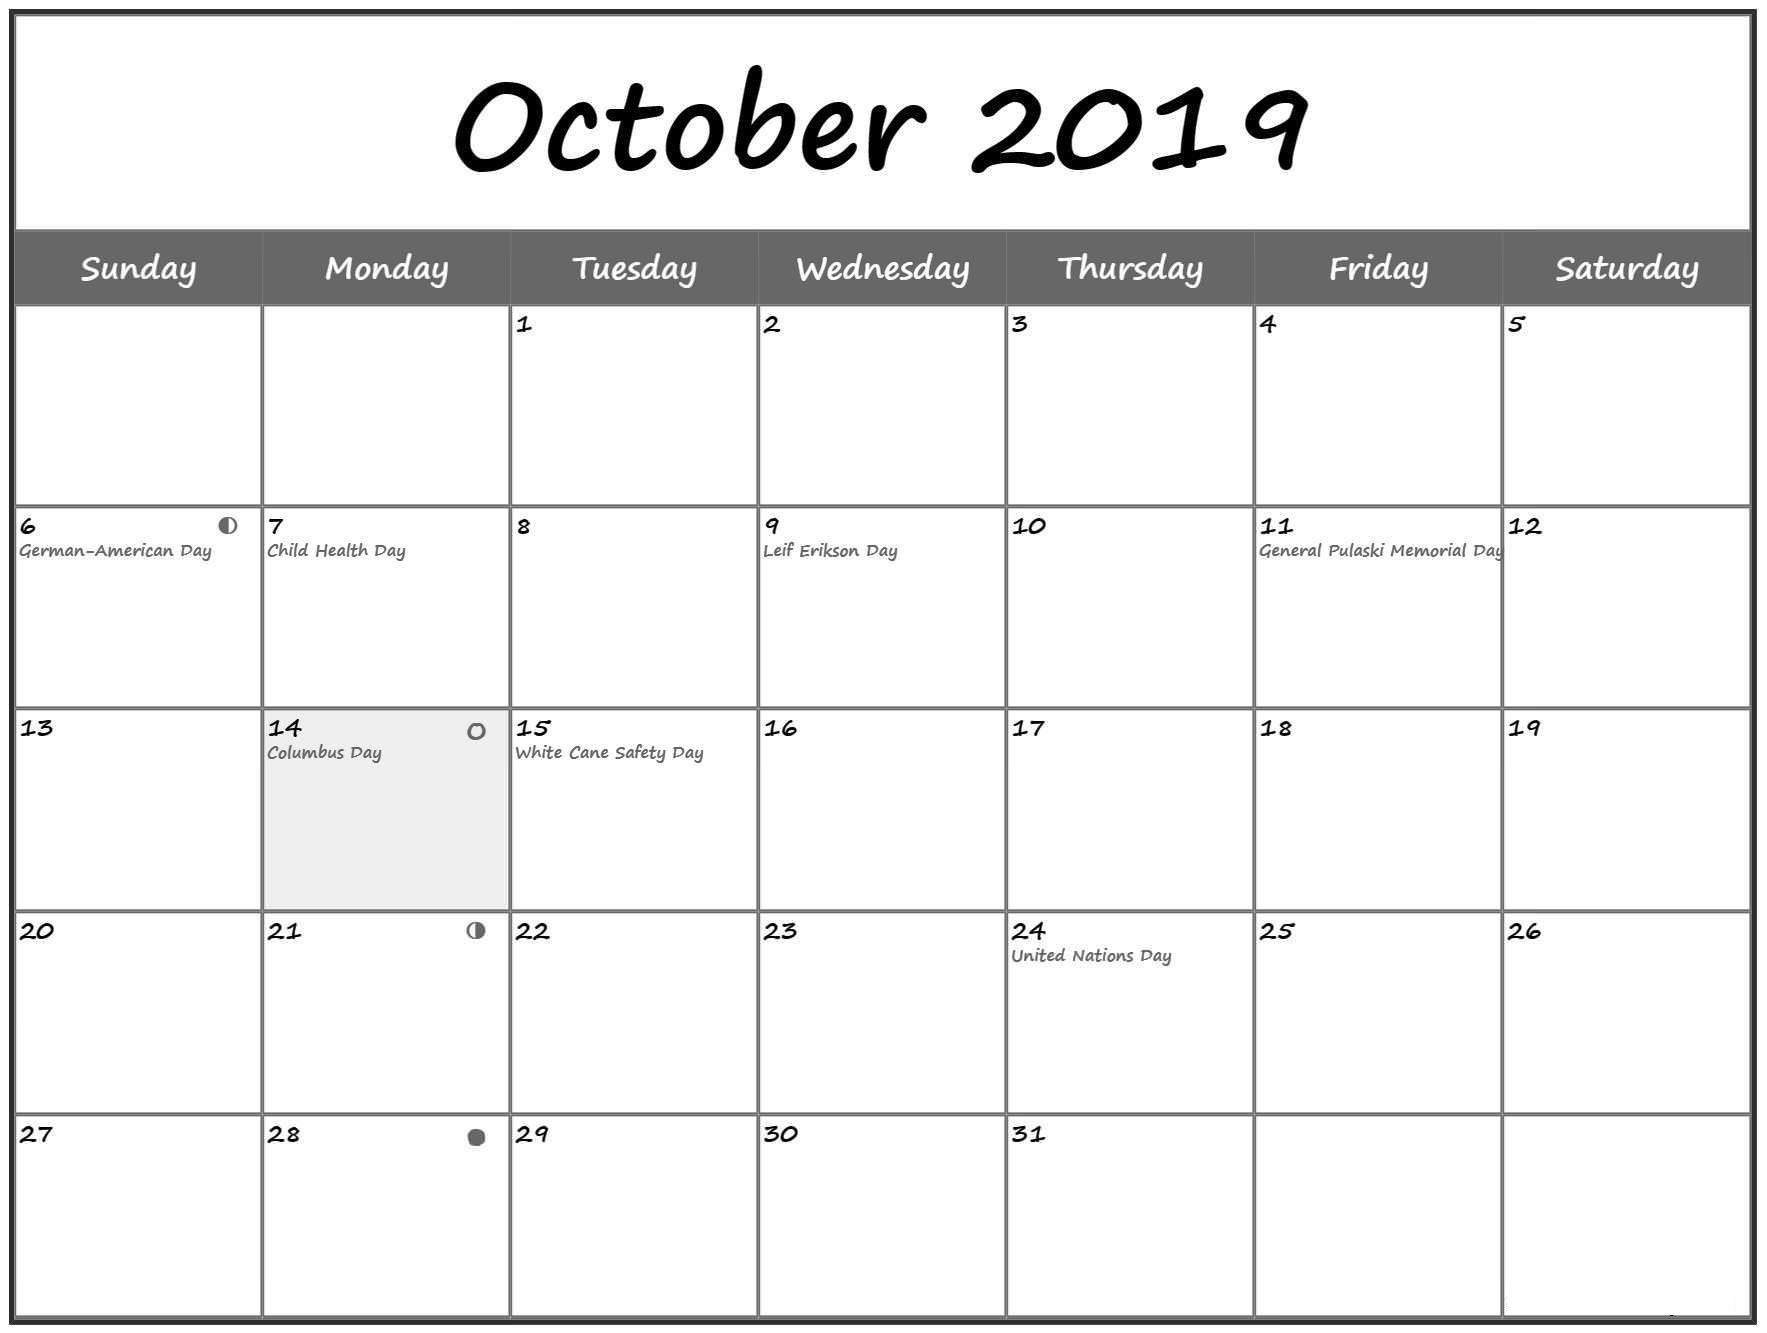 October 2019 Calendar With Holidays Printable With Notes with Vacation Calendar Template